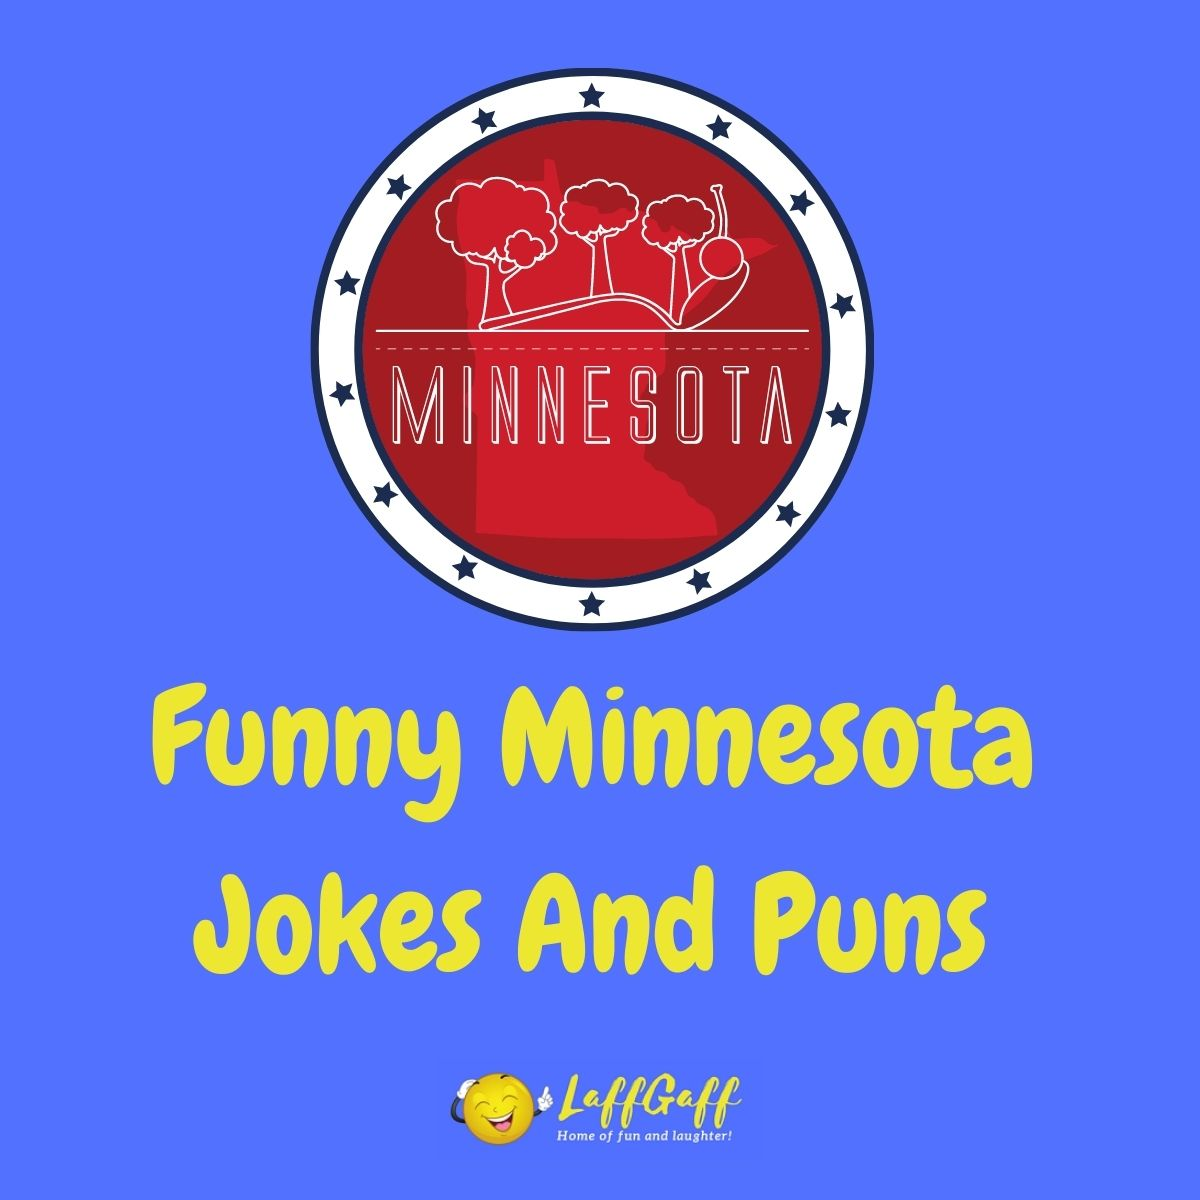 Featured image for a page of funny Minnesota jokes and puns.